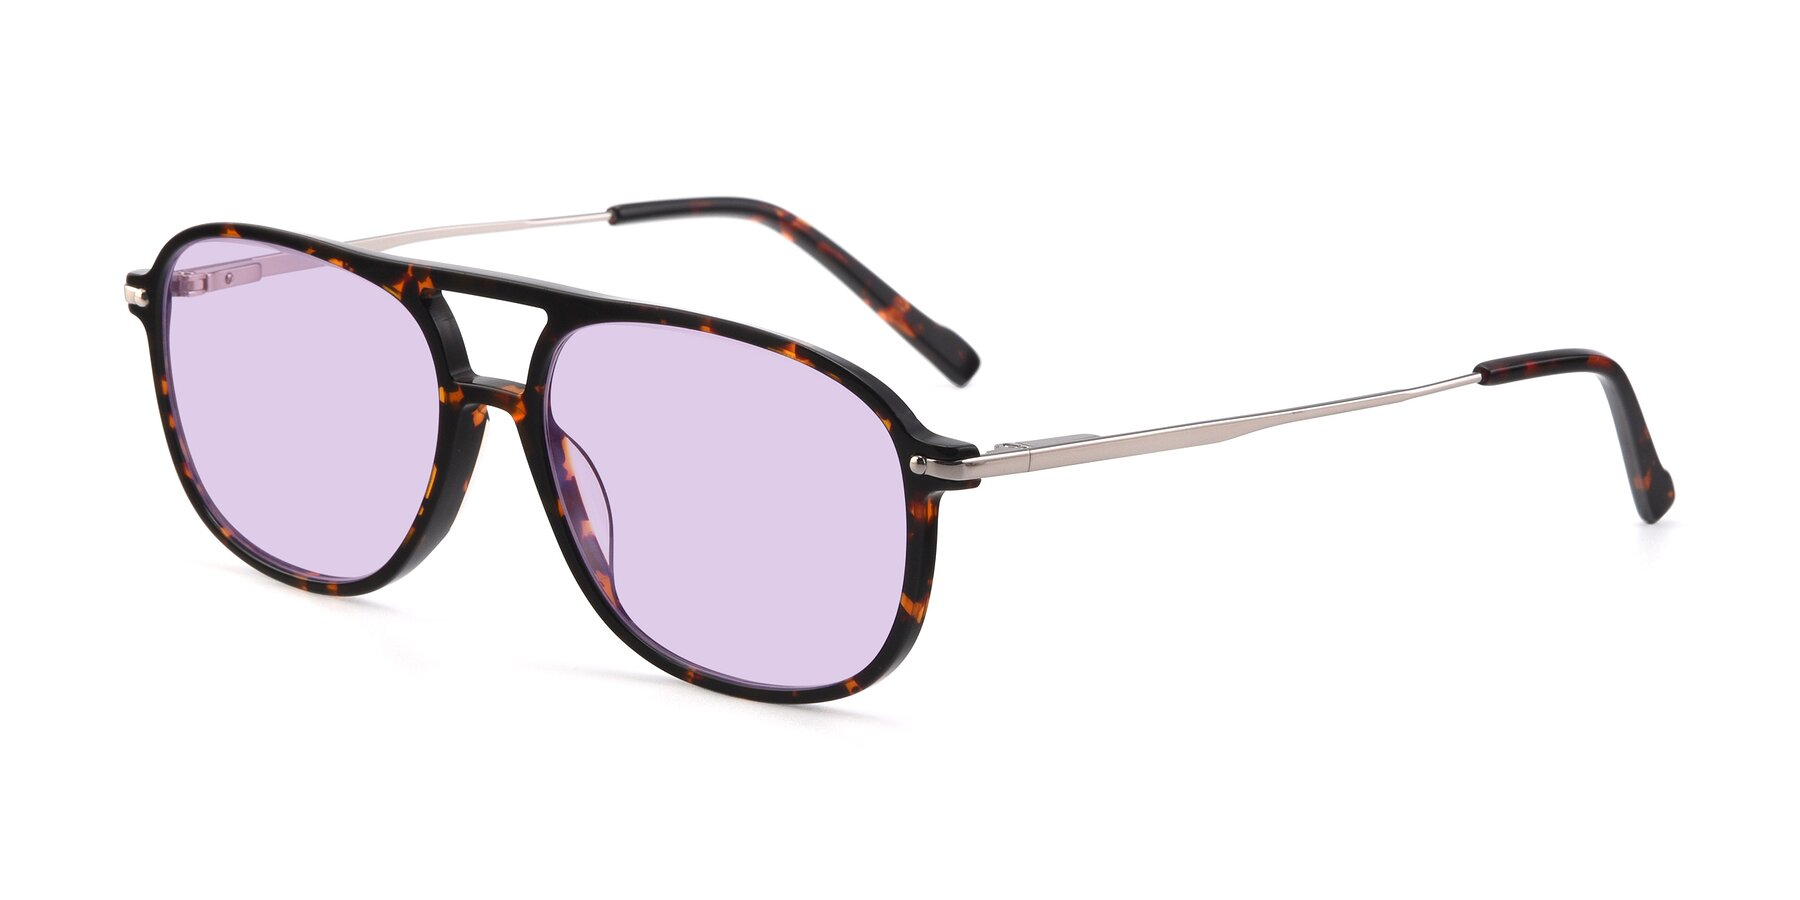 Angle of 17580 in Tortoise with Light Purple Tinted Lenses